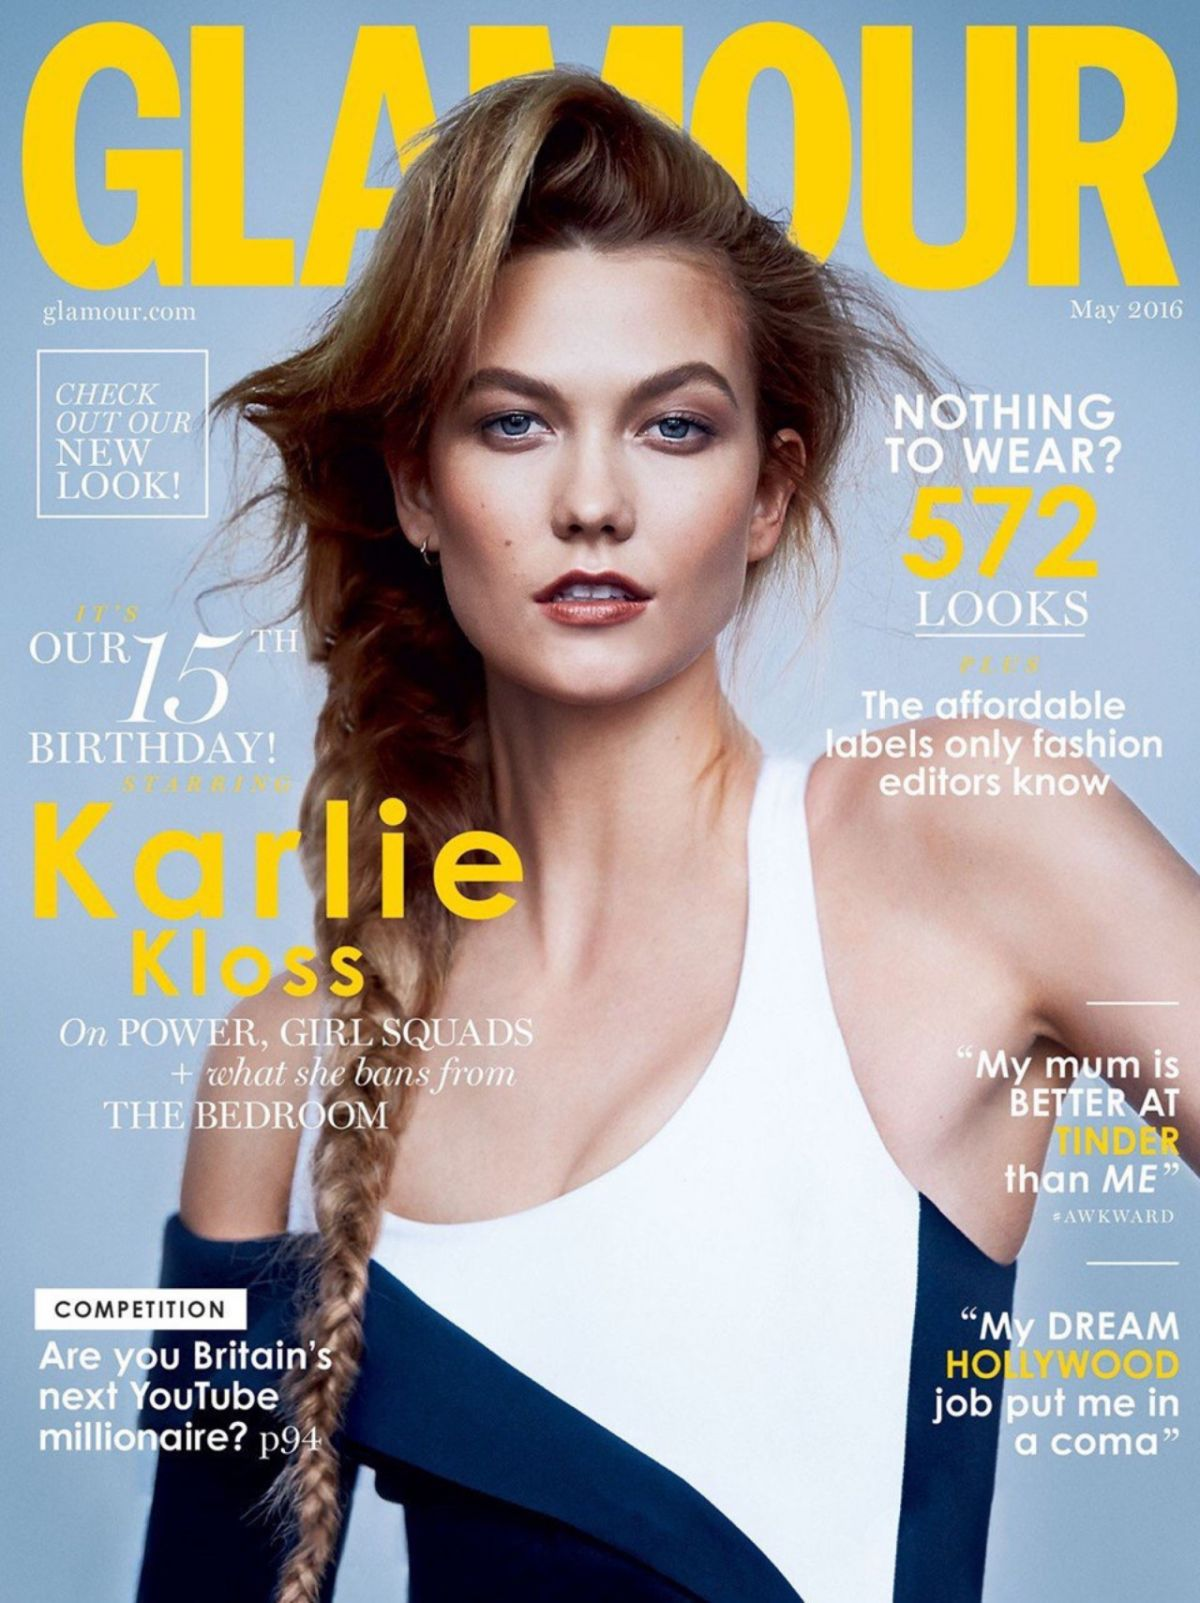 KARLIE KLOSS in Glamout Magazine, May 2016 Issue